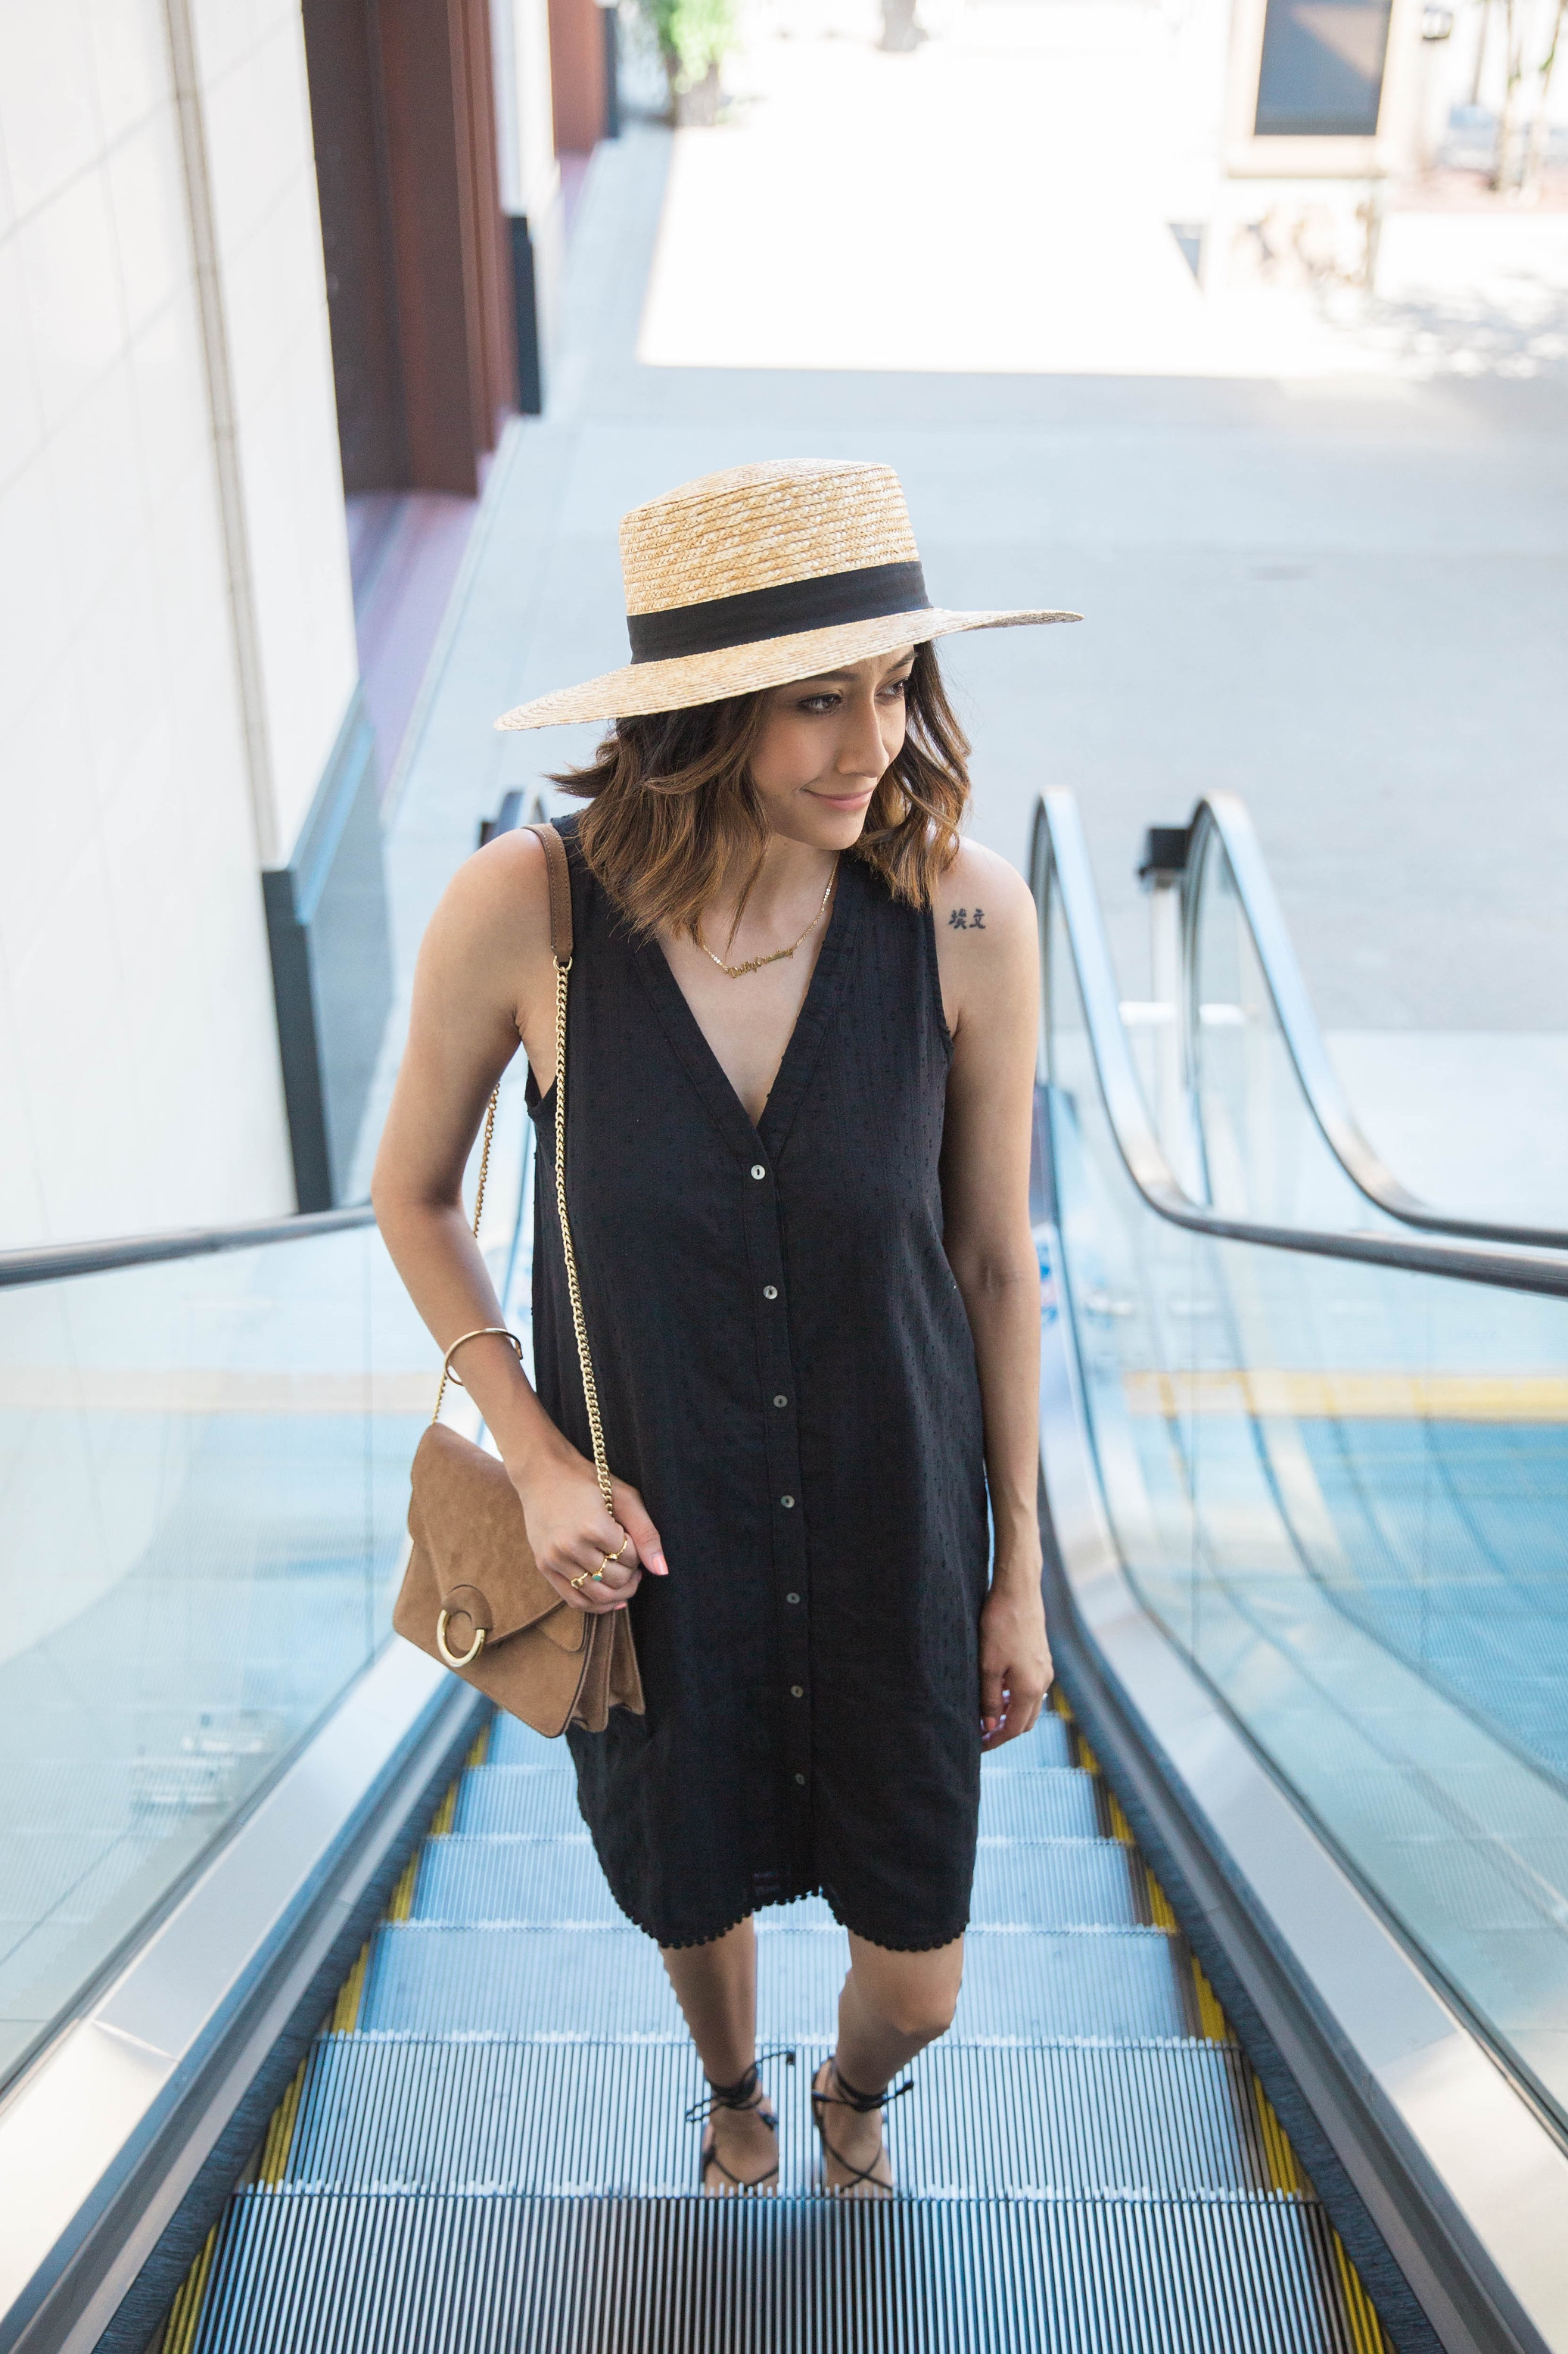 How to accessorize a minimal look with hats